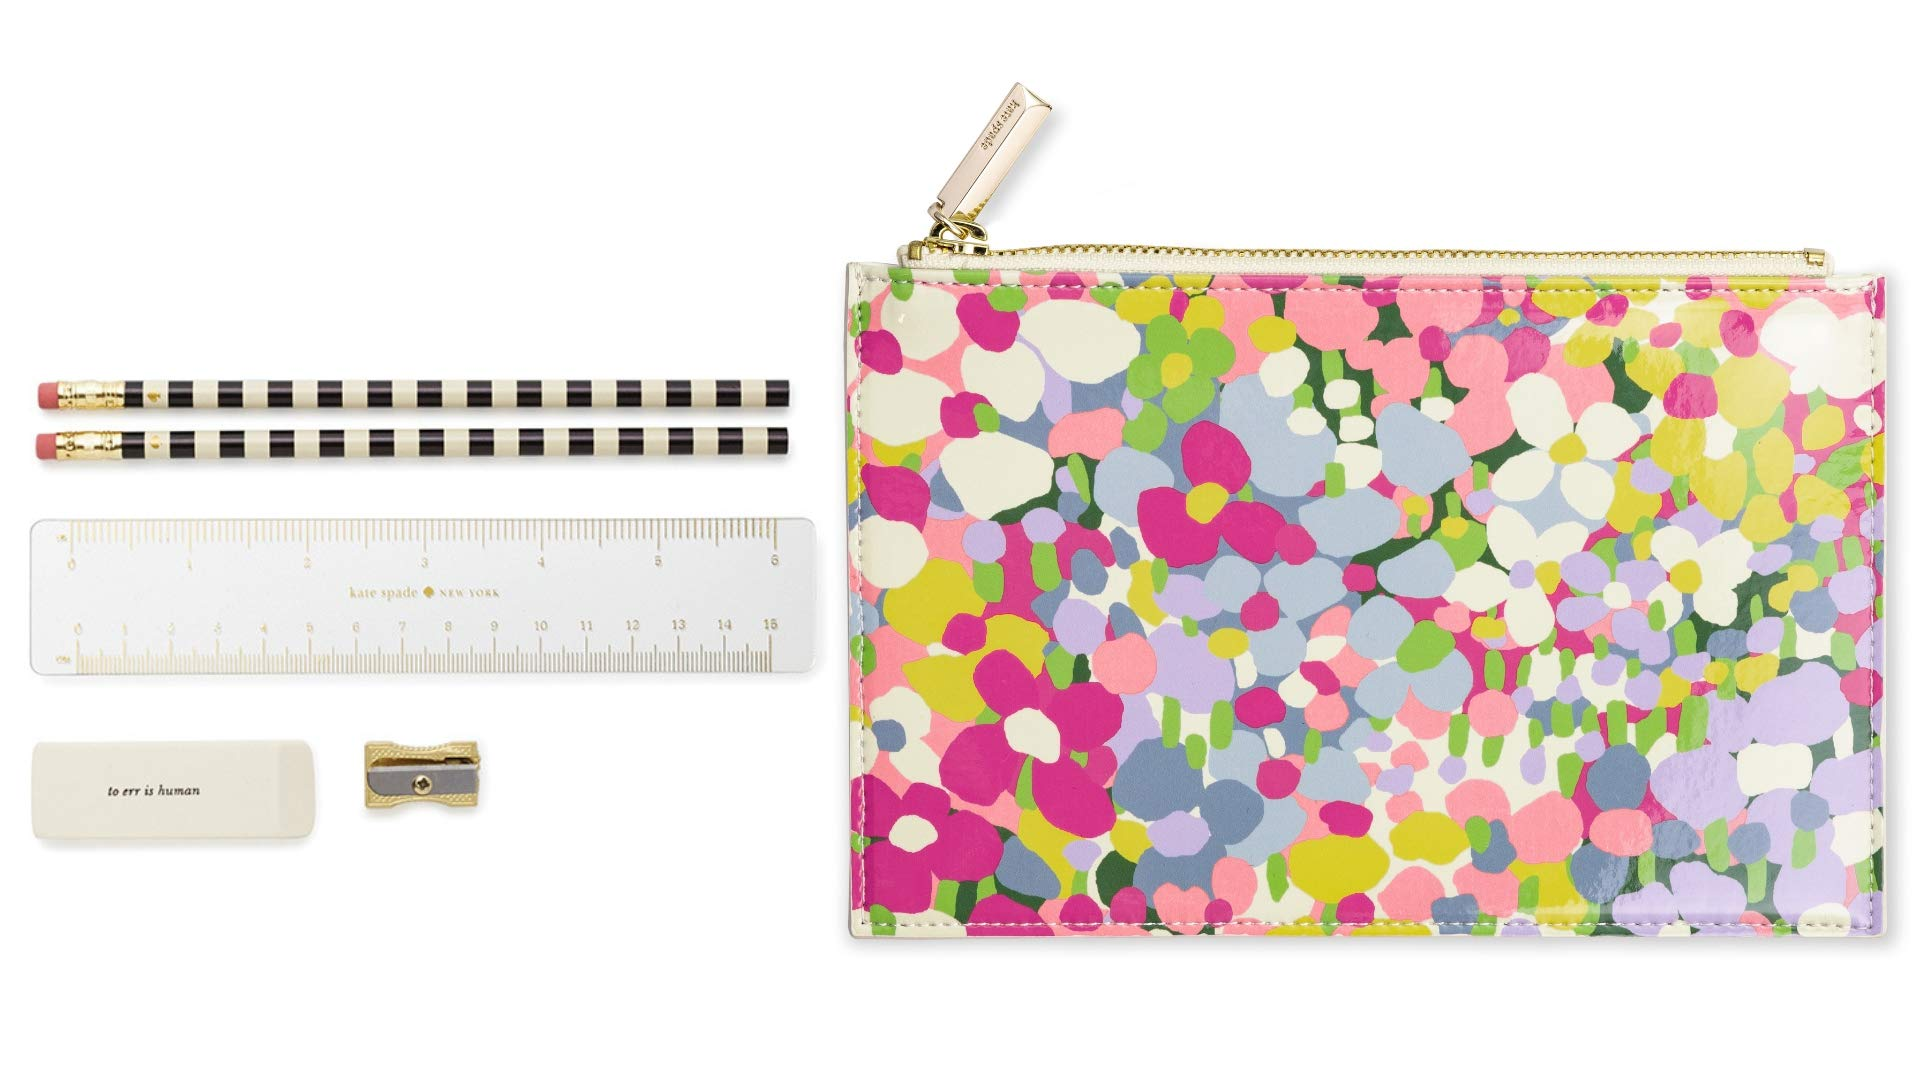 Kate Spade New York Pencil Pouch Including 2 Pencils, Sharpener, Eraser, and Ruler School Supplies (Floral Dot) by Kate Spade New York